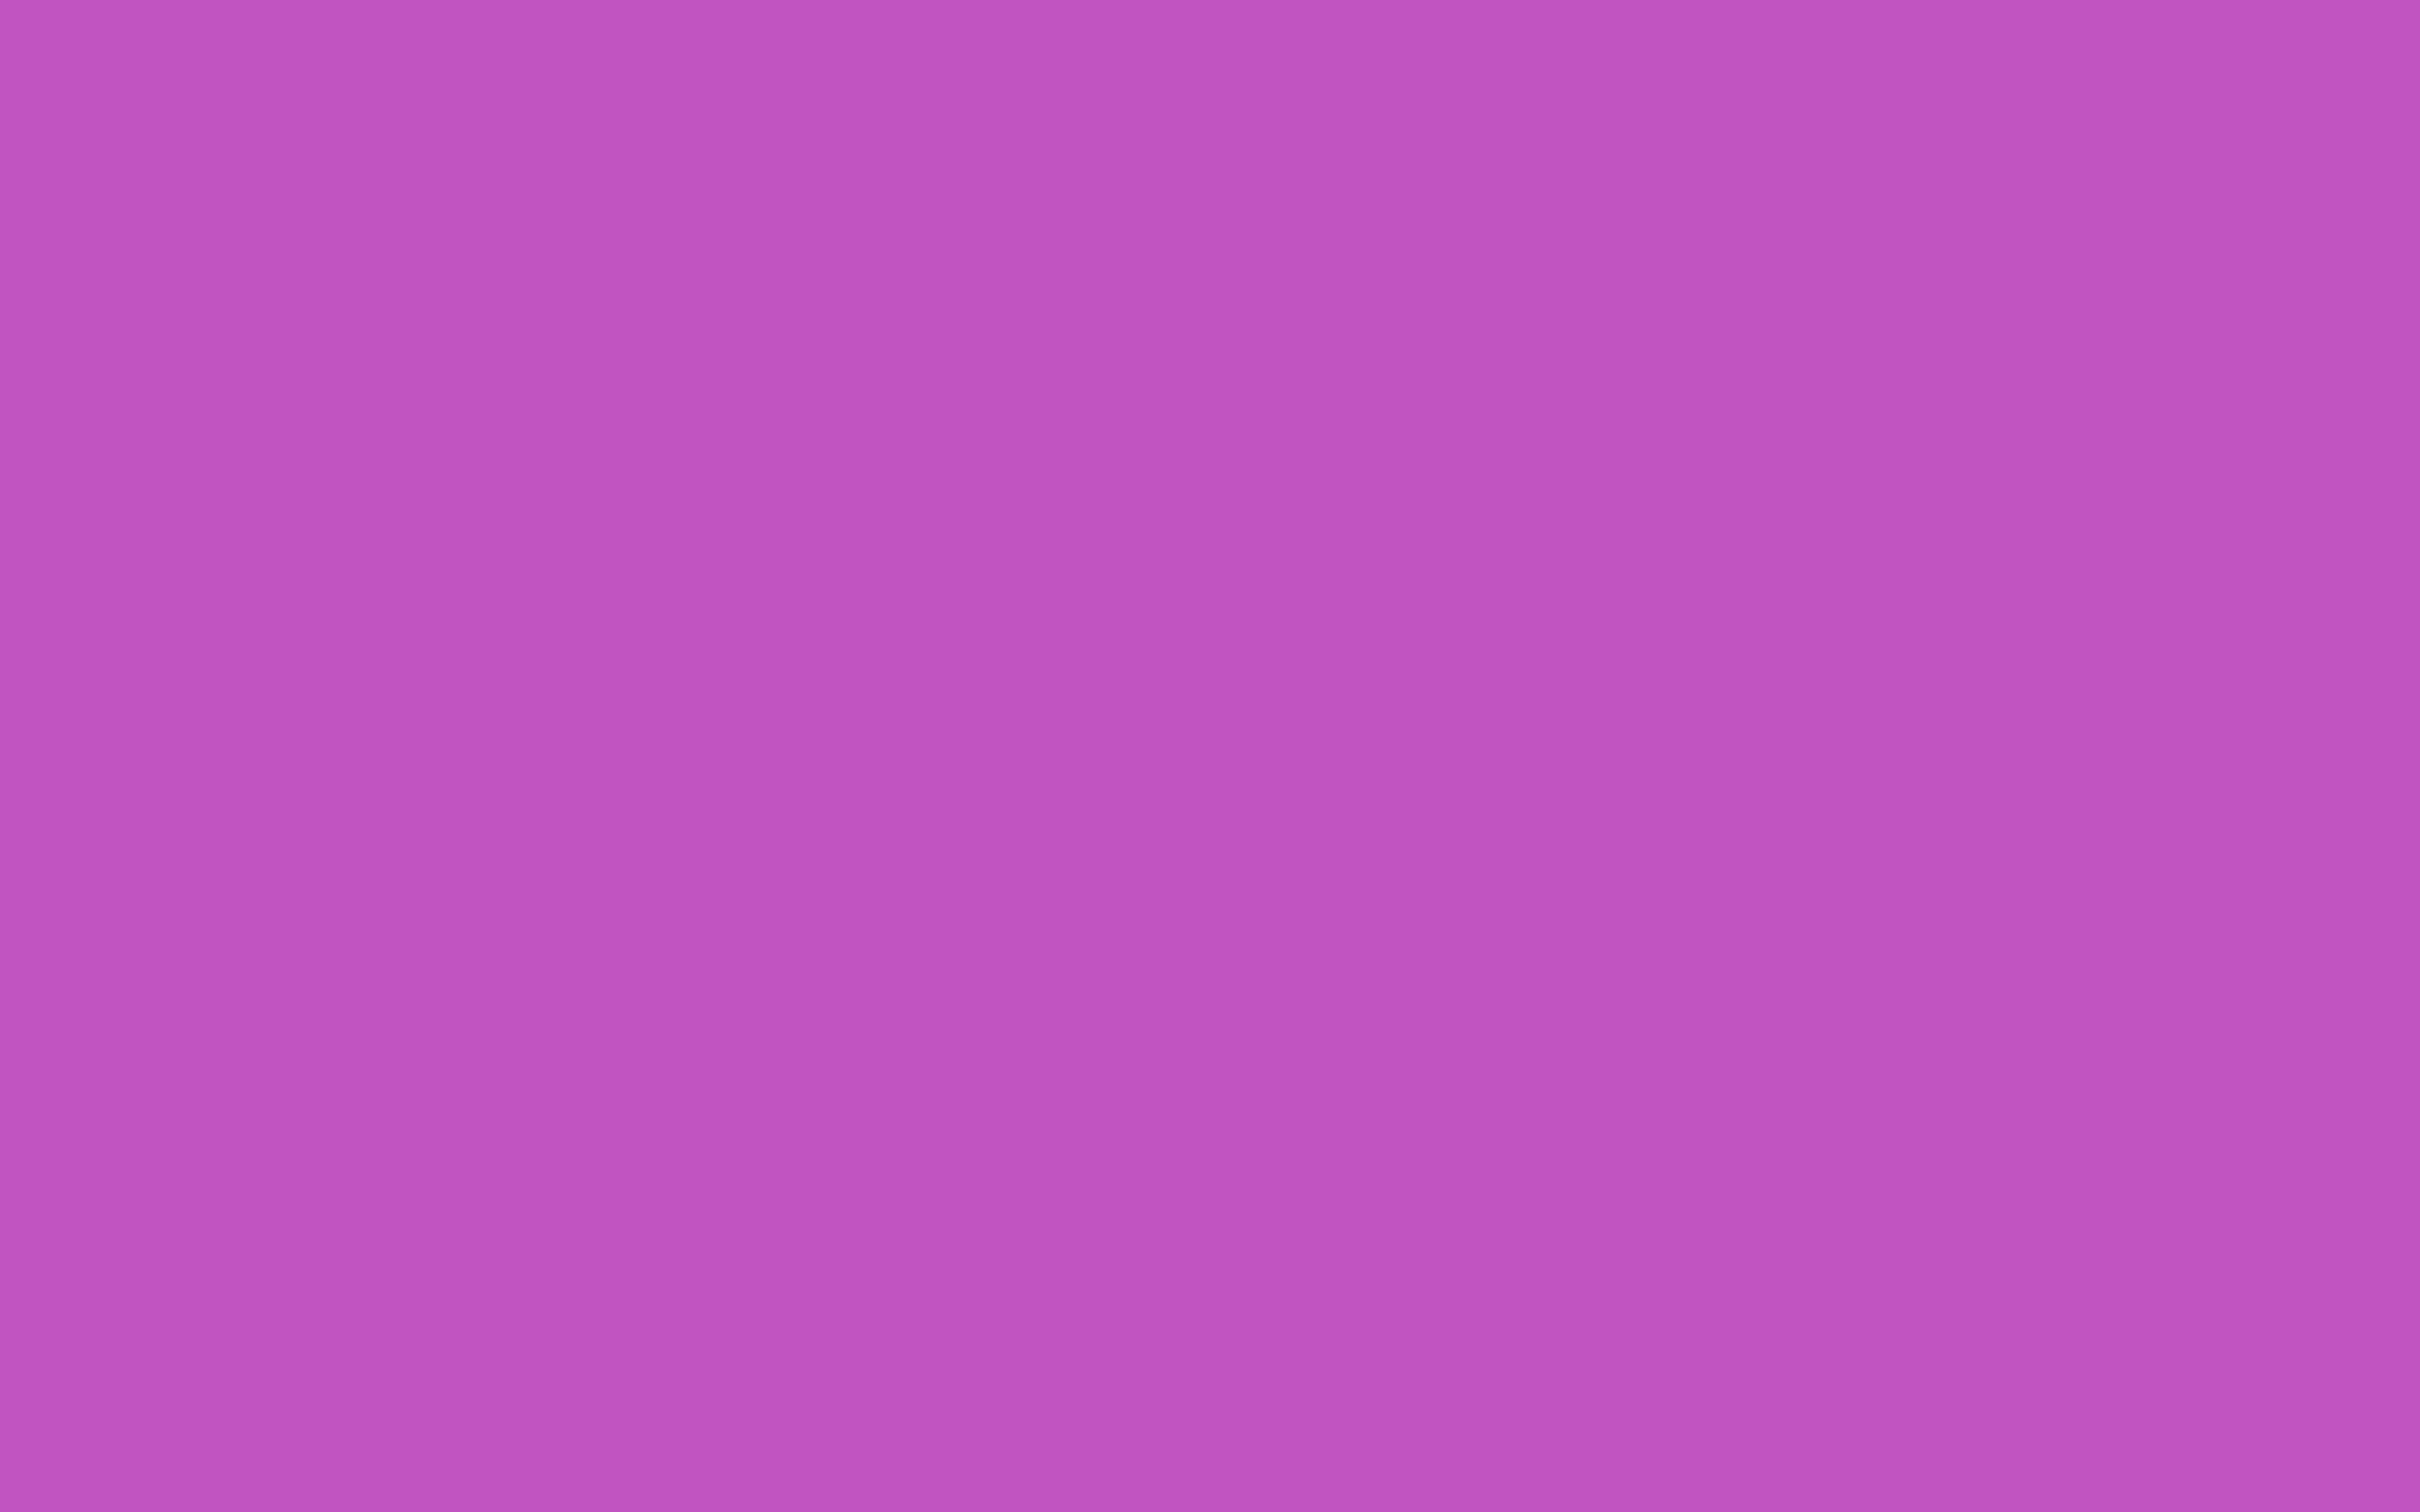 2880x1800 Deep Fuchsia Solid Color Background